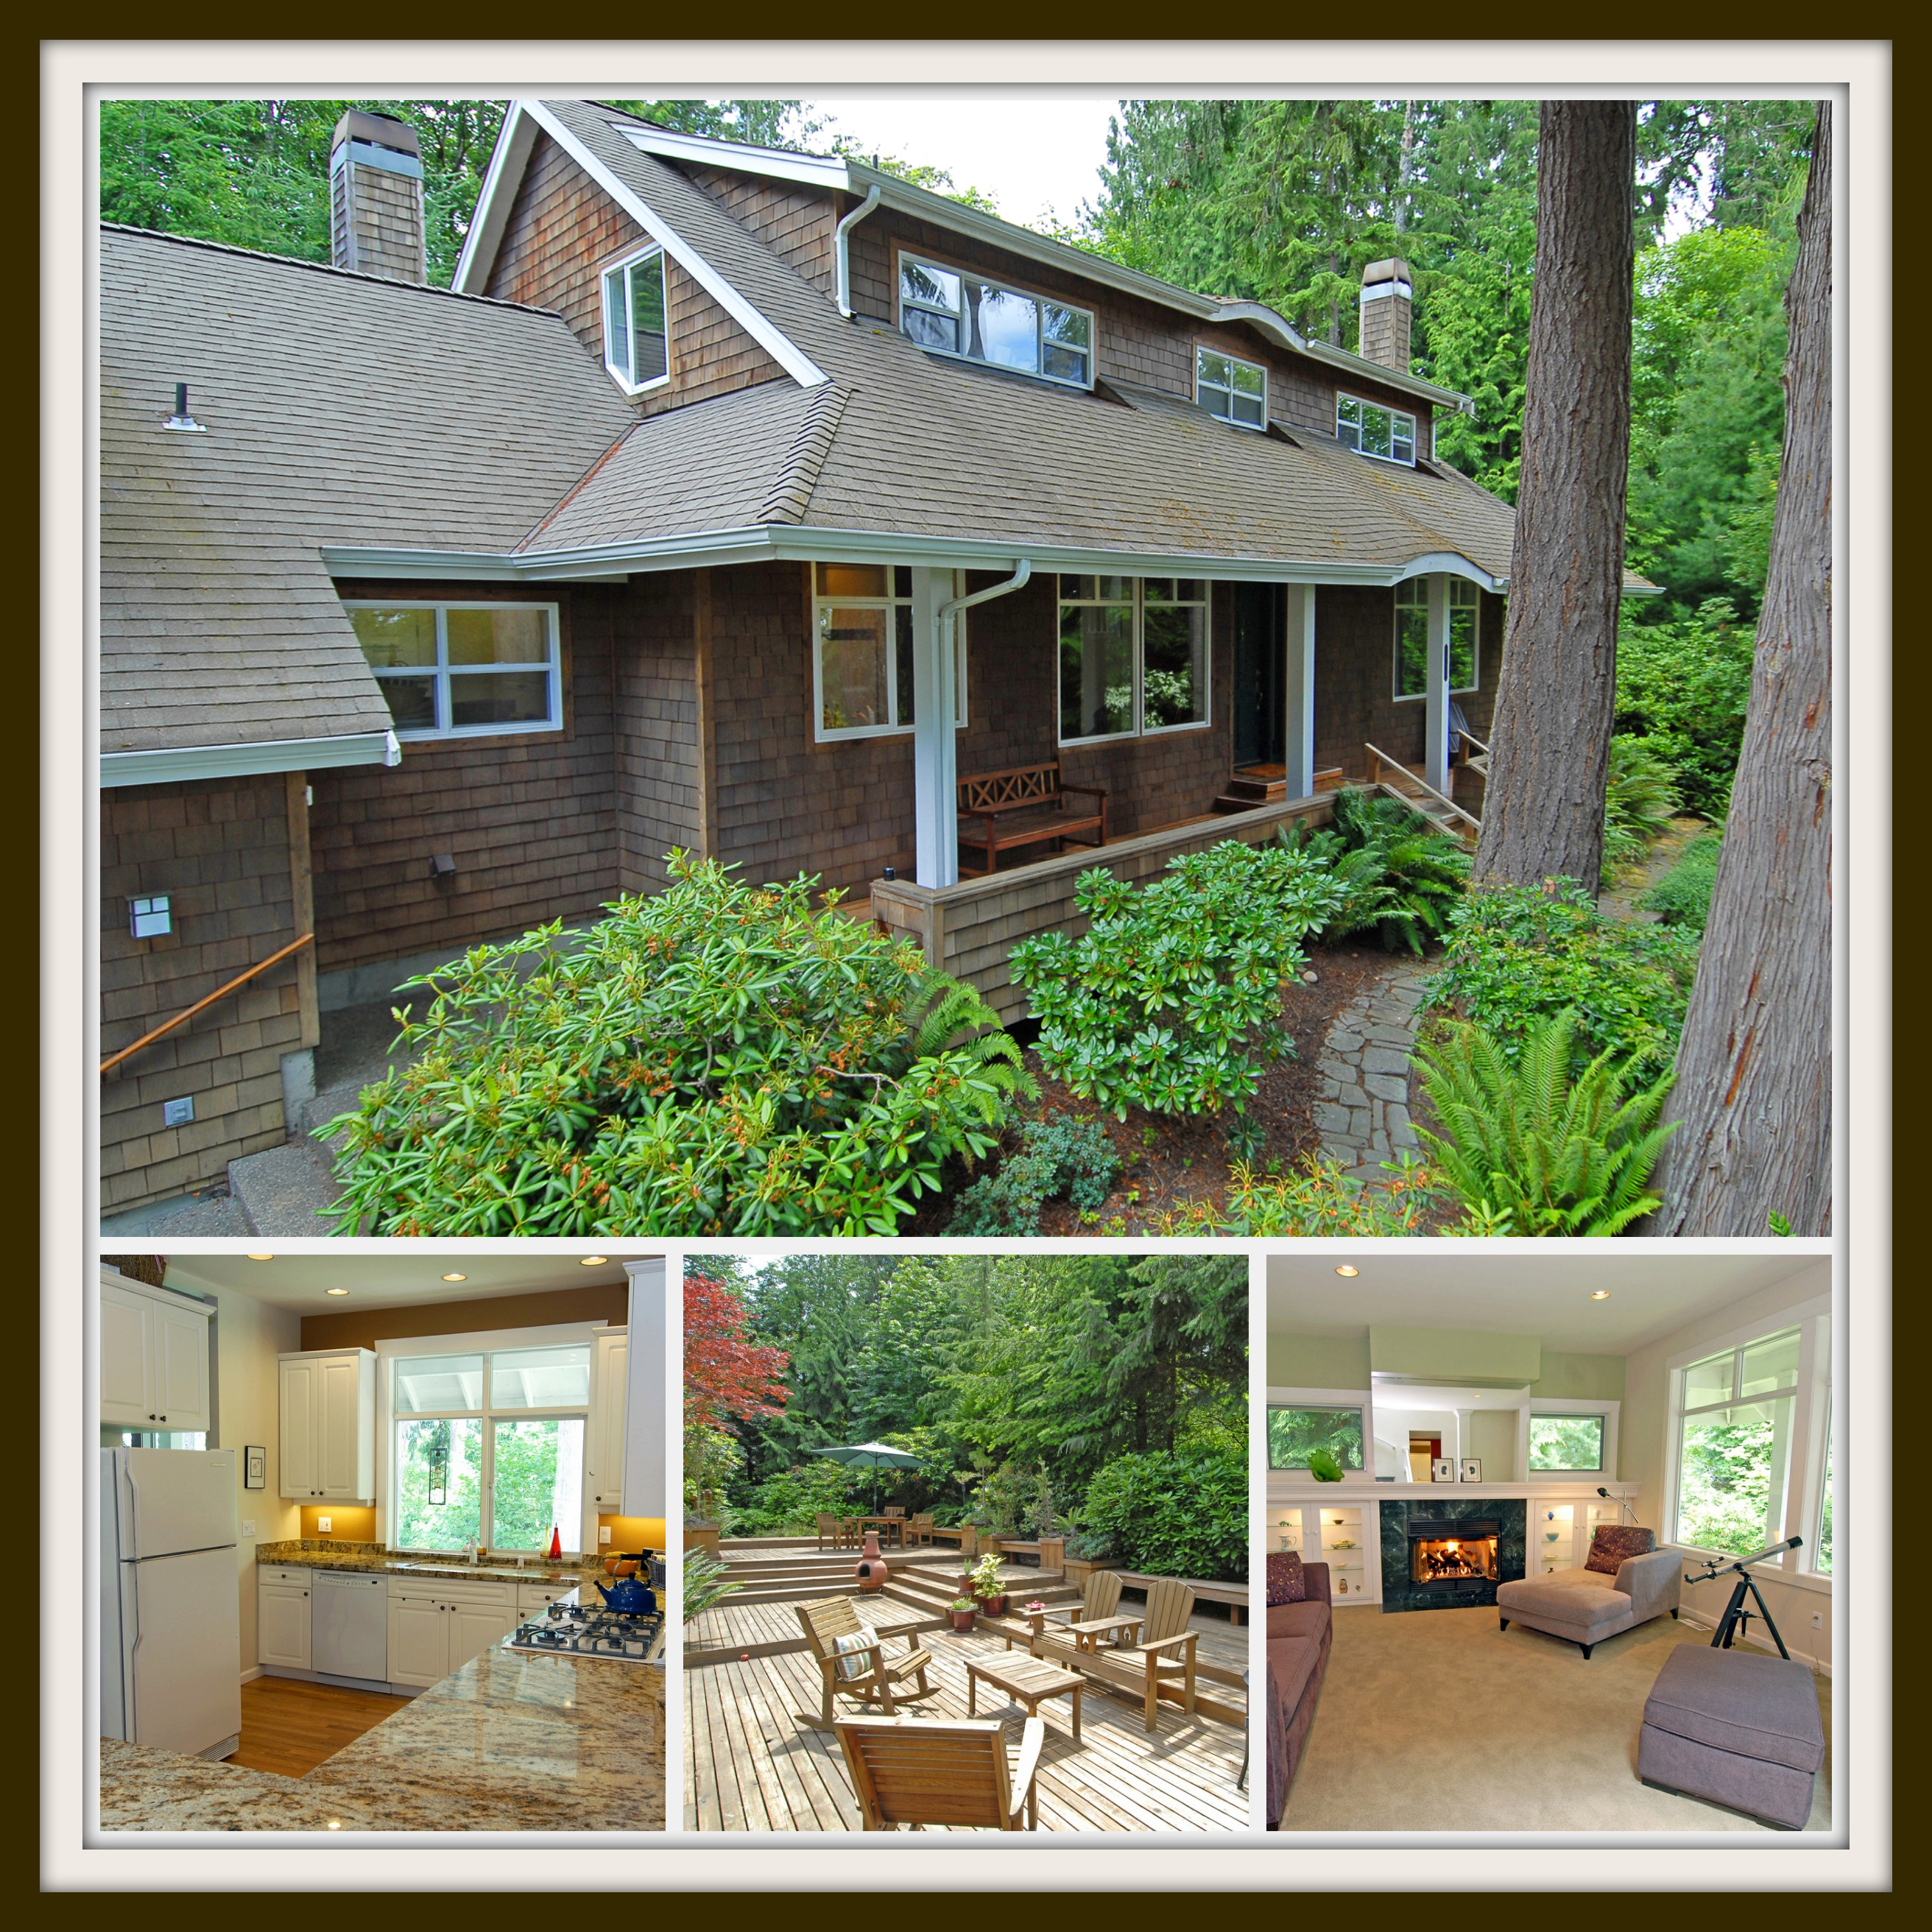 Wimsey Lane on Bainbridge Island sold by Jen Pells Real Estate Agent